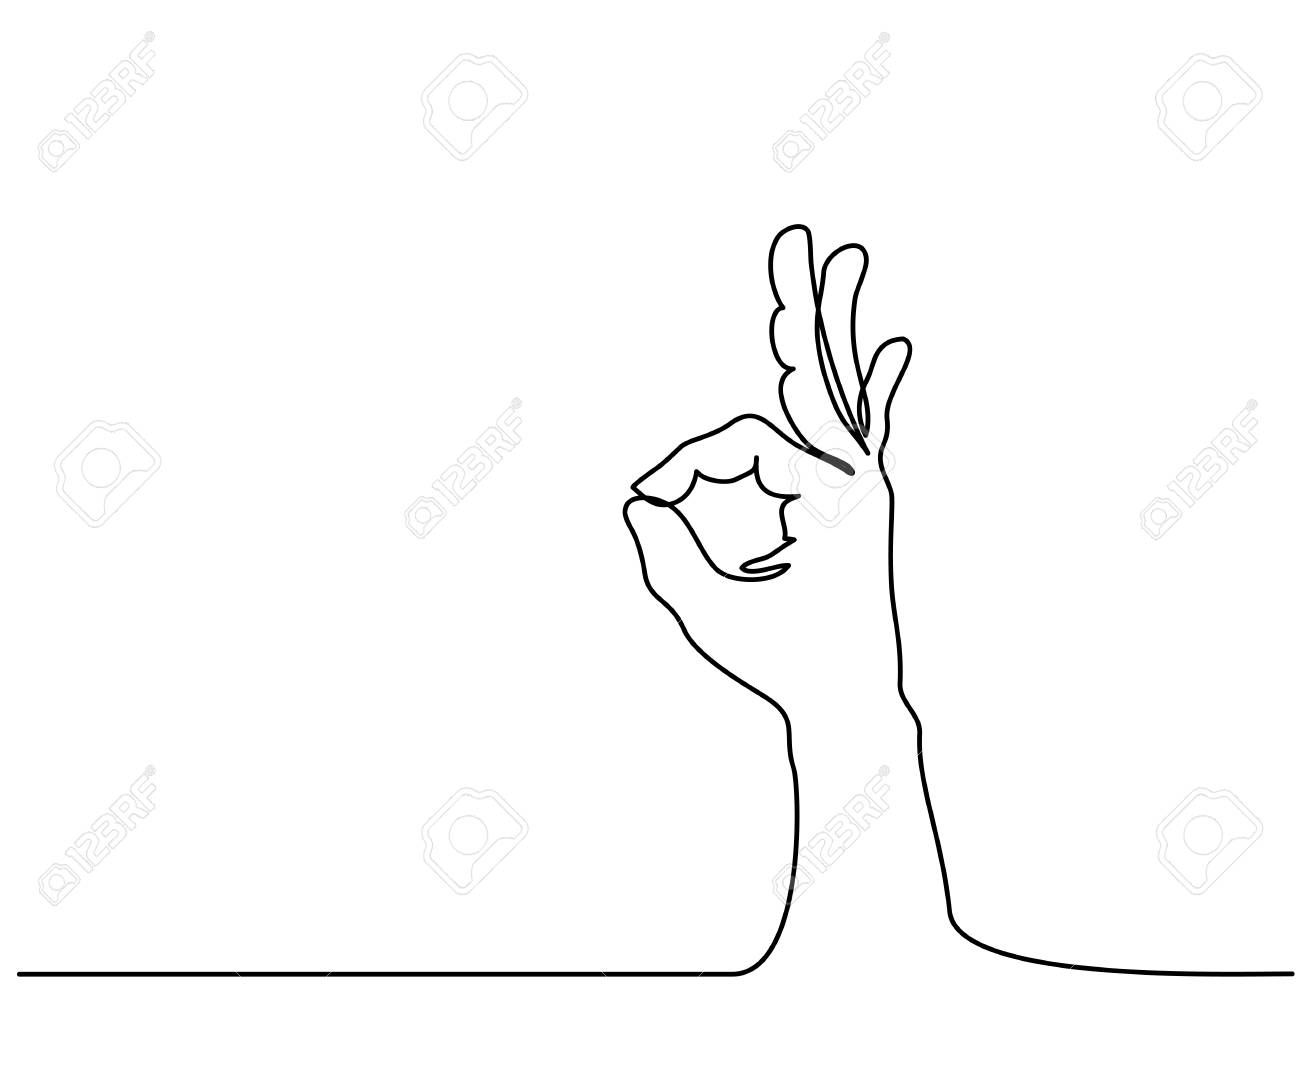 Continuous line drawing. Hand in ok sign on a white isolated background. Vector illustration. - 93778576